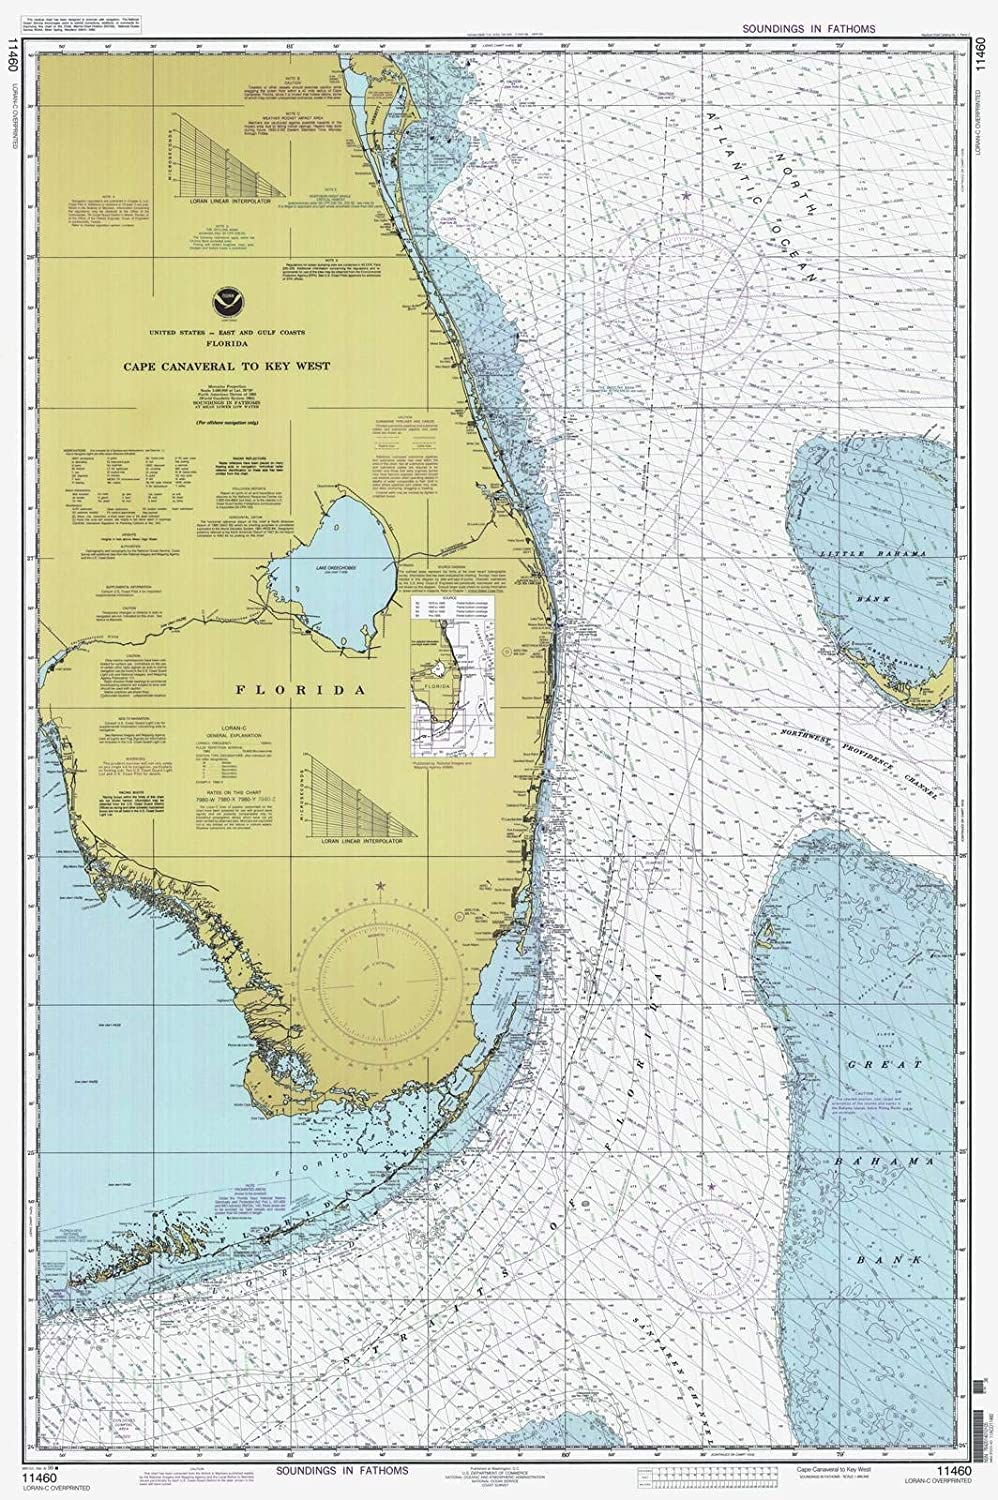 Amazon.com: Map - Cape Canaveral To Key West, 1999 Nautical ... on myakka map, southwest gulf coast map, cape kennedy map, frostproof map, cape blanco map, cape hatteras map, canaveral groves map, beach in indialantic fl map, lake okeechobee map, gladeview map, cape cod map, great basin map, south daytona beach map, canaveral port authority map, florida map, canaveral barge canal map, st. augustine map, key west map, cape flattery map, the everglades map,